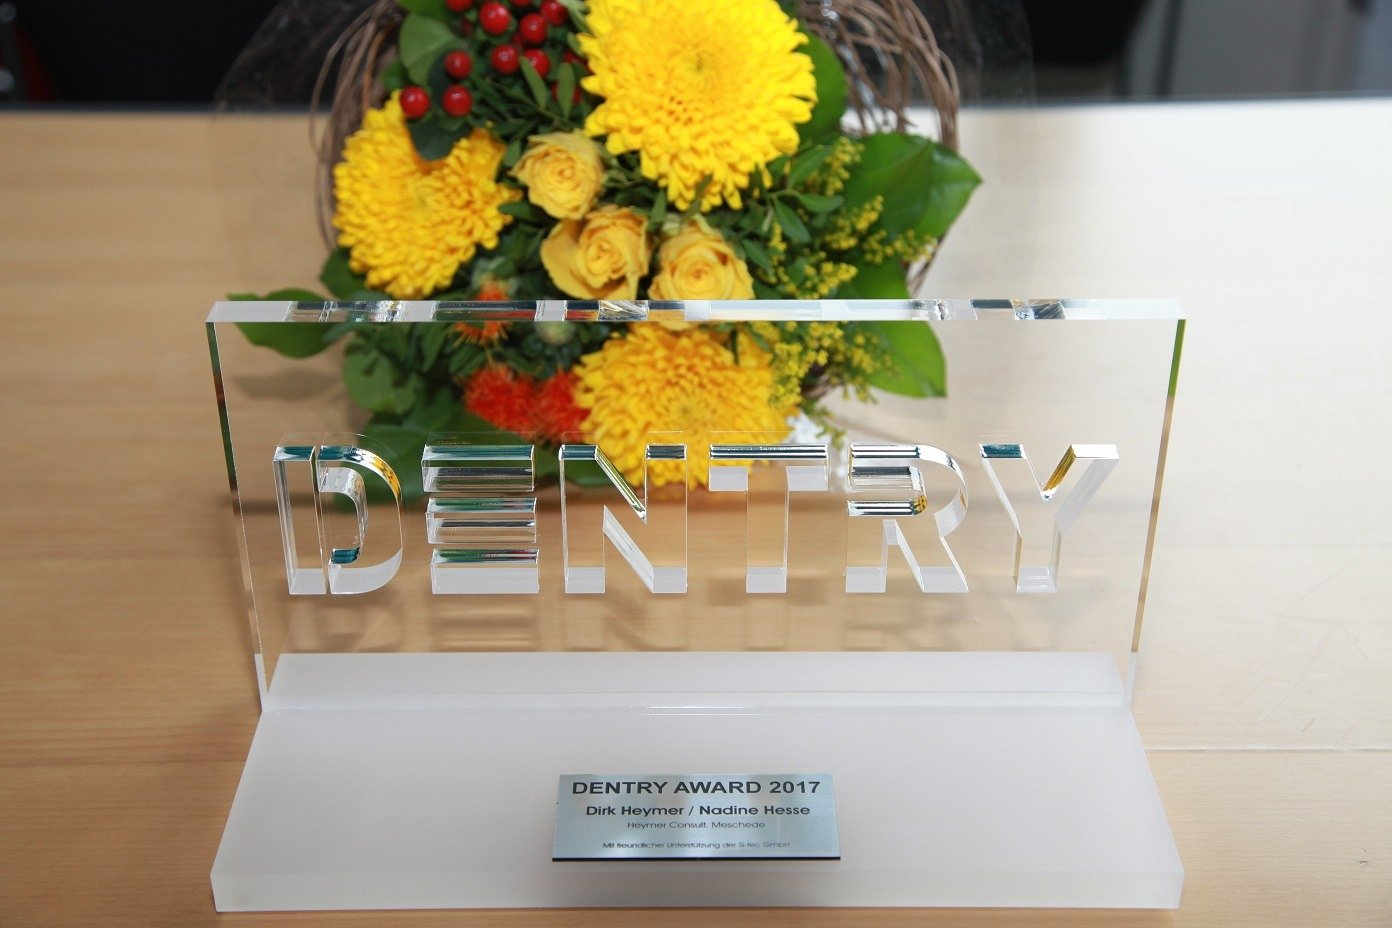 Gewinner des DENTRY Award